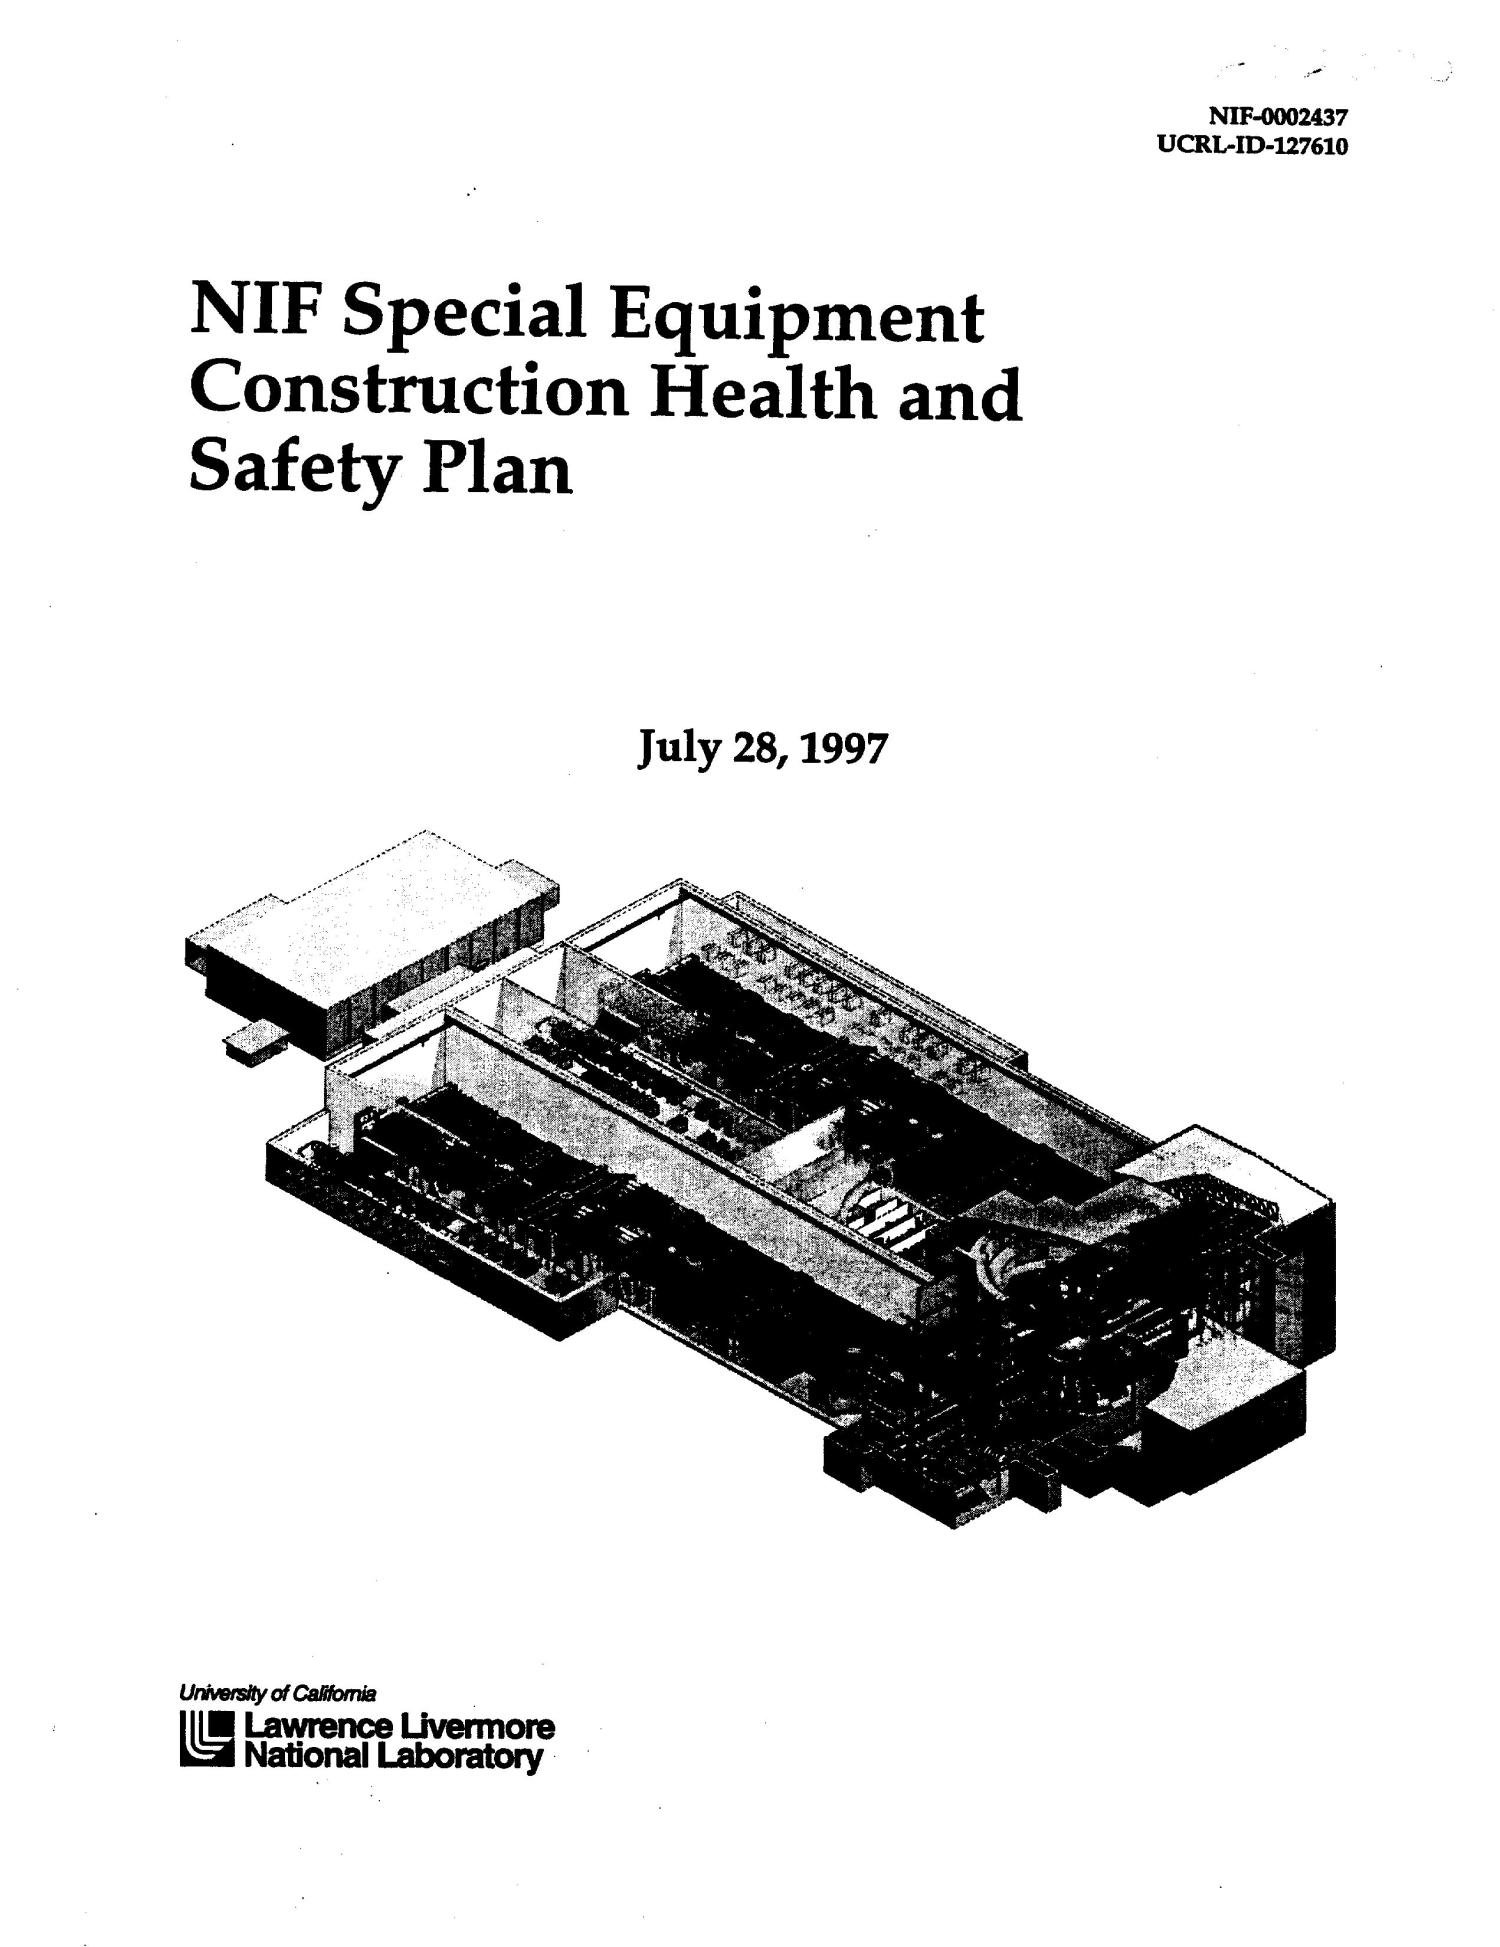 NIF special equipment construction health and safety plan